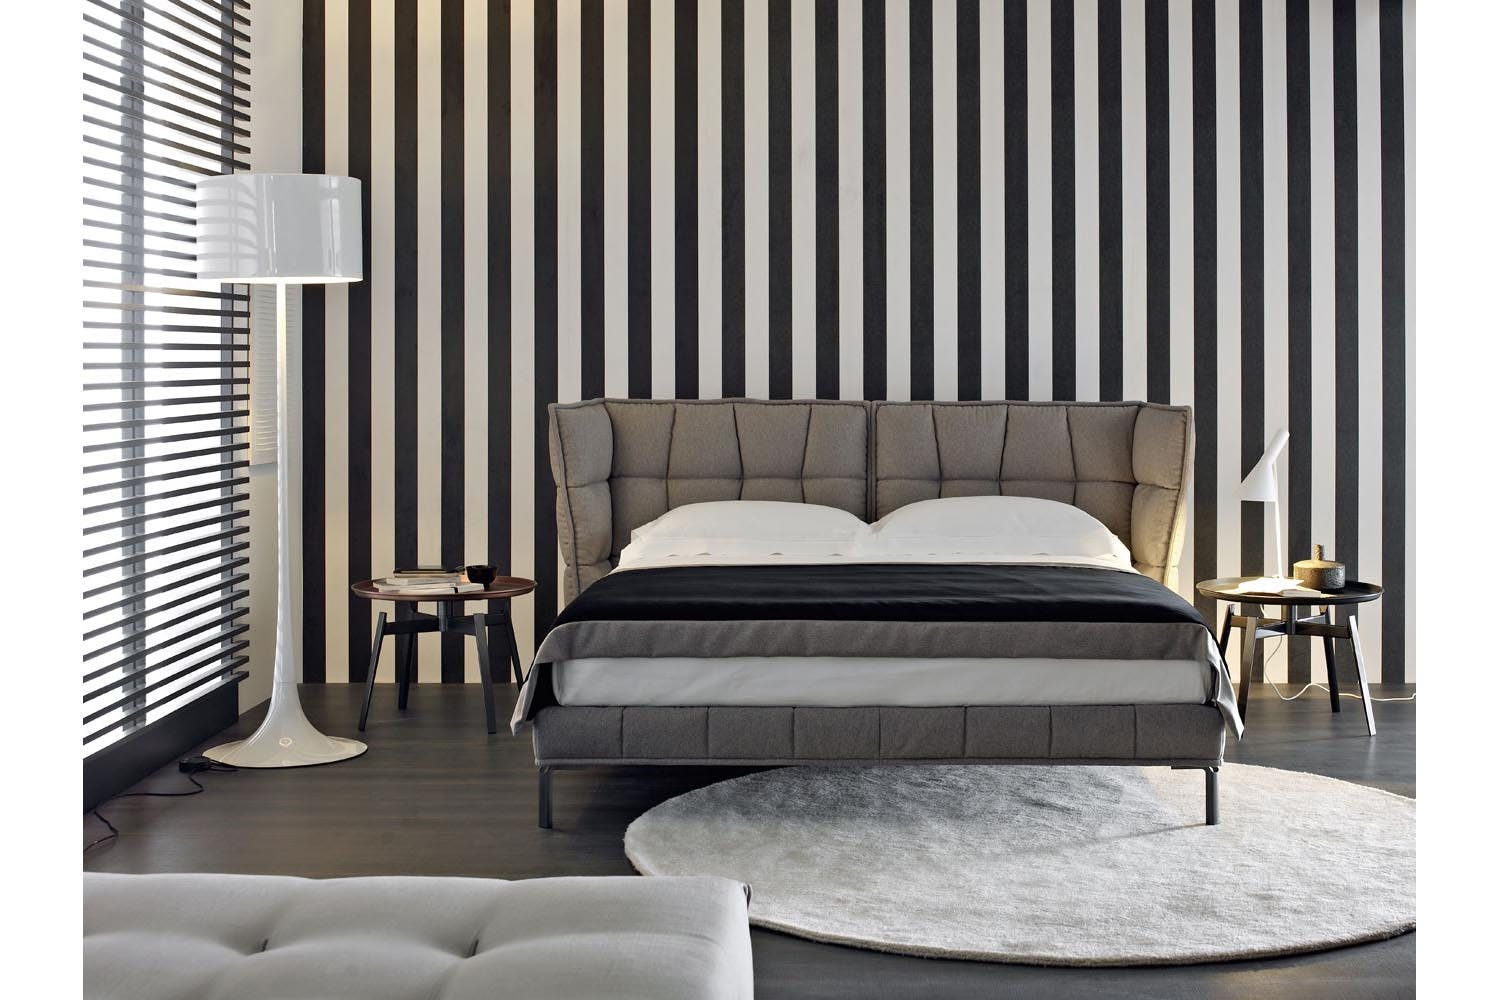 husk bed by patricia urquiola for b b italia space furniture. Black Bedroom Furniture Sets. Home Design Ideas